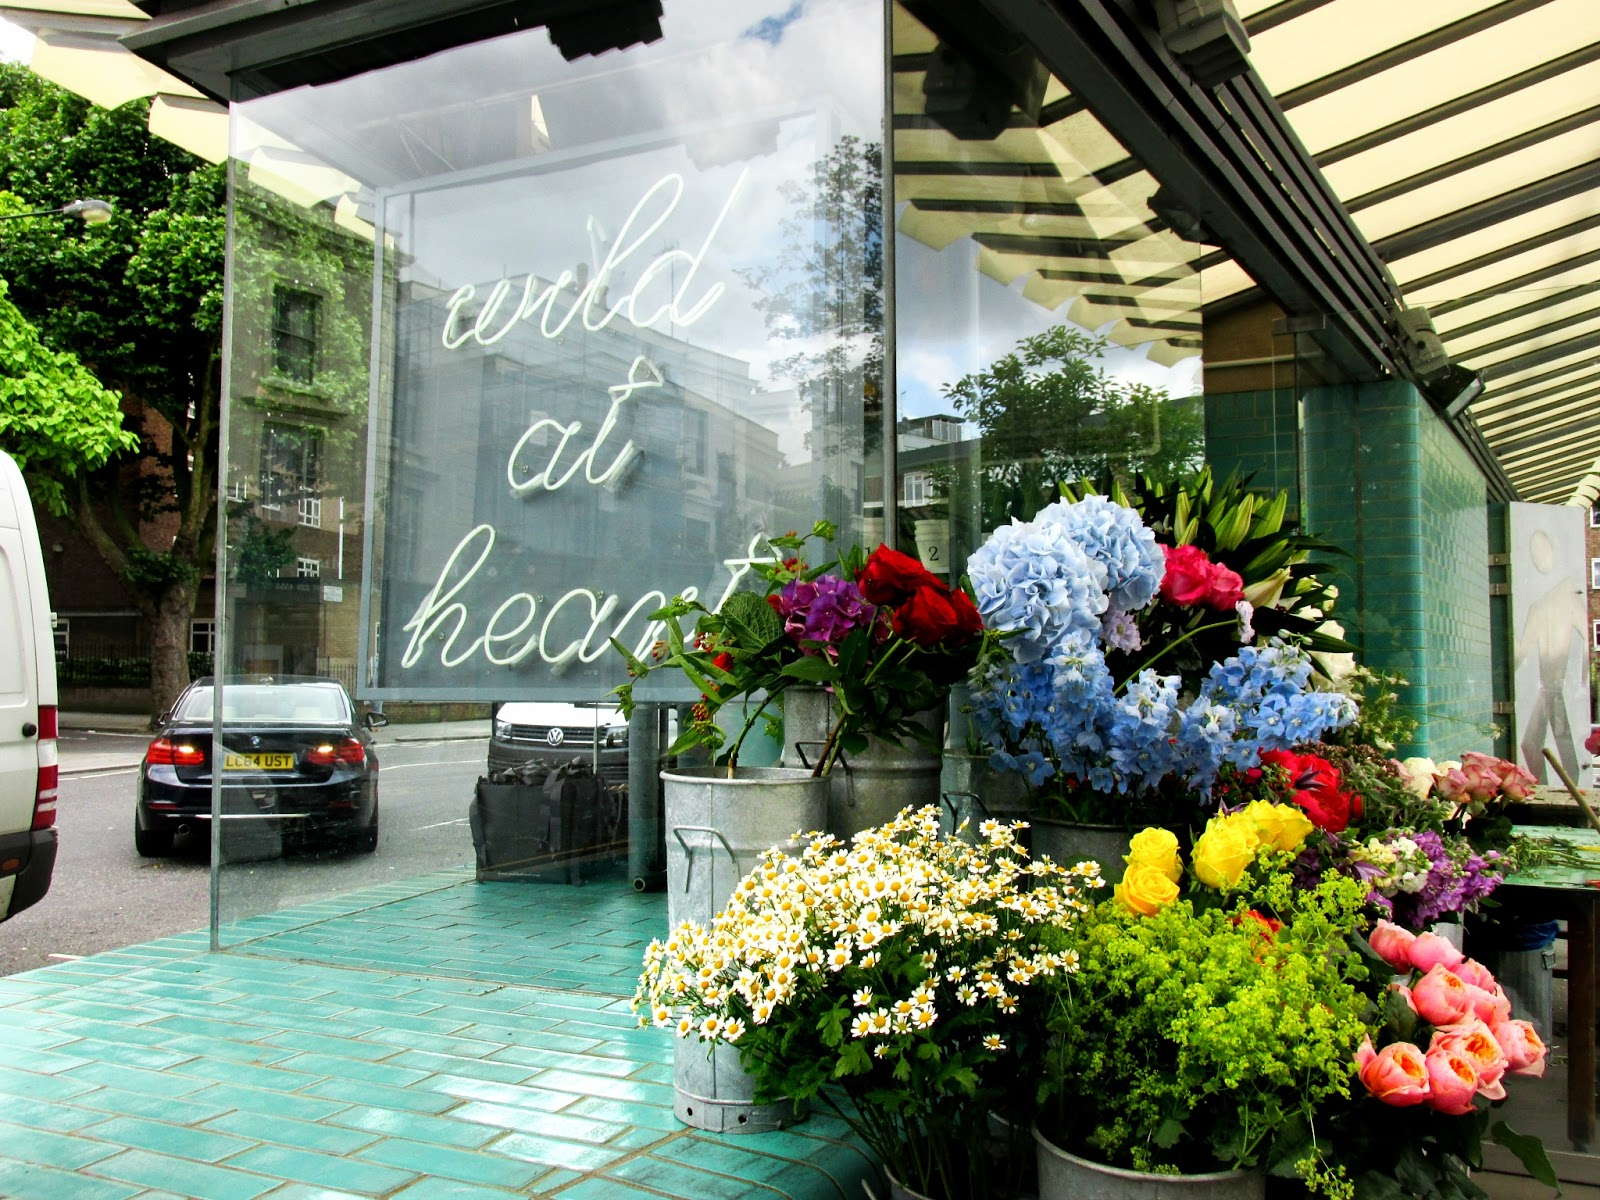 My notting hill blog - We Then Roamed Around The Meandering Streets Before Stumbling Upon One Of My Notting Hill Highlights The Wild At Heart Florist While This Little Island